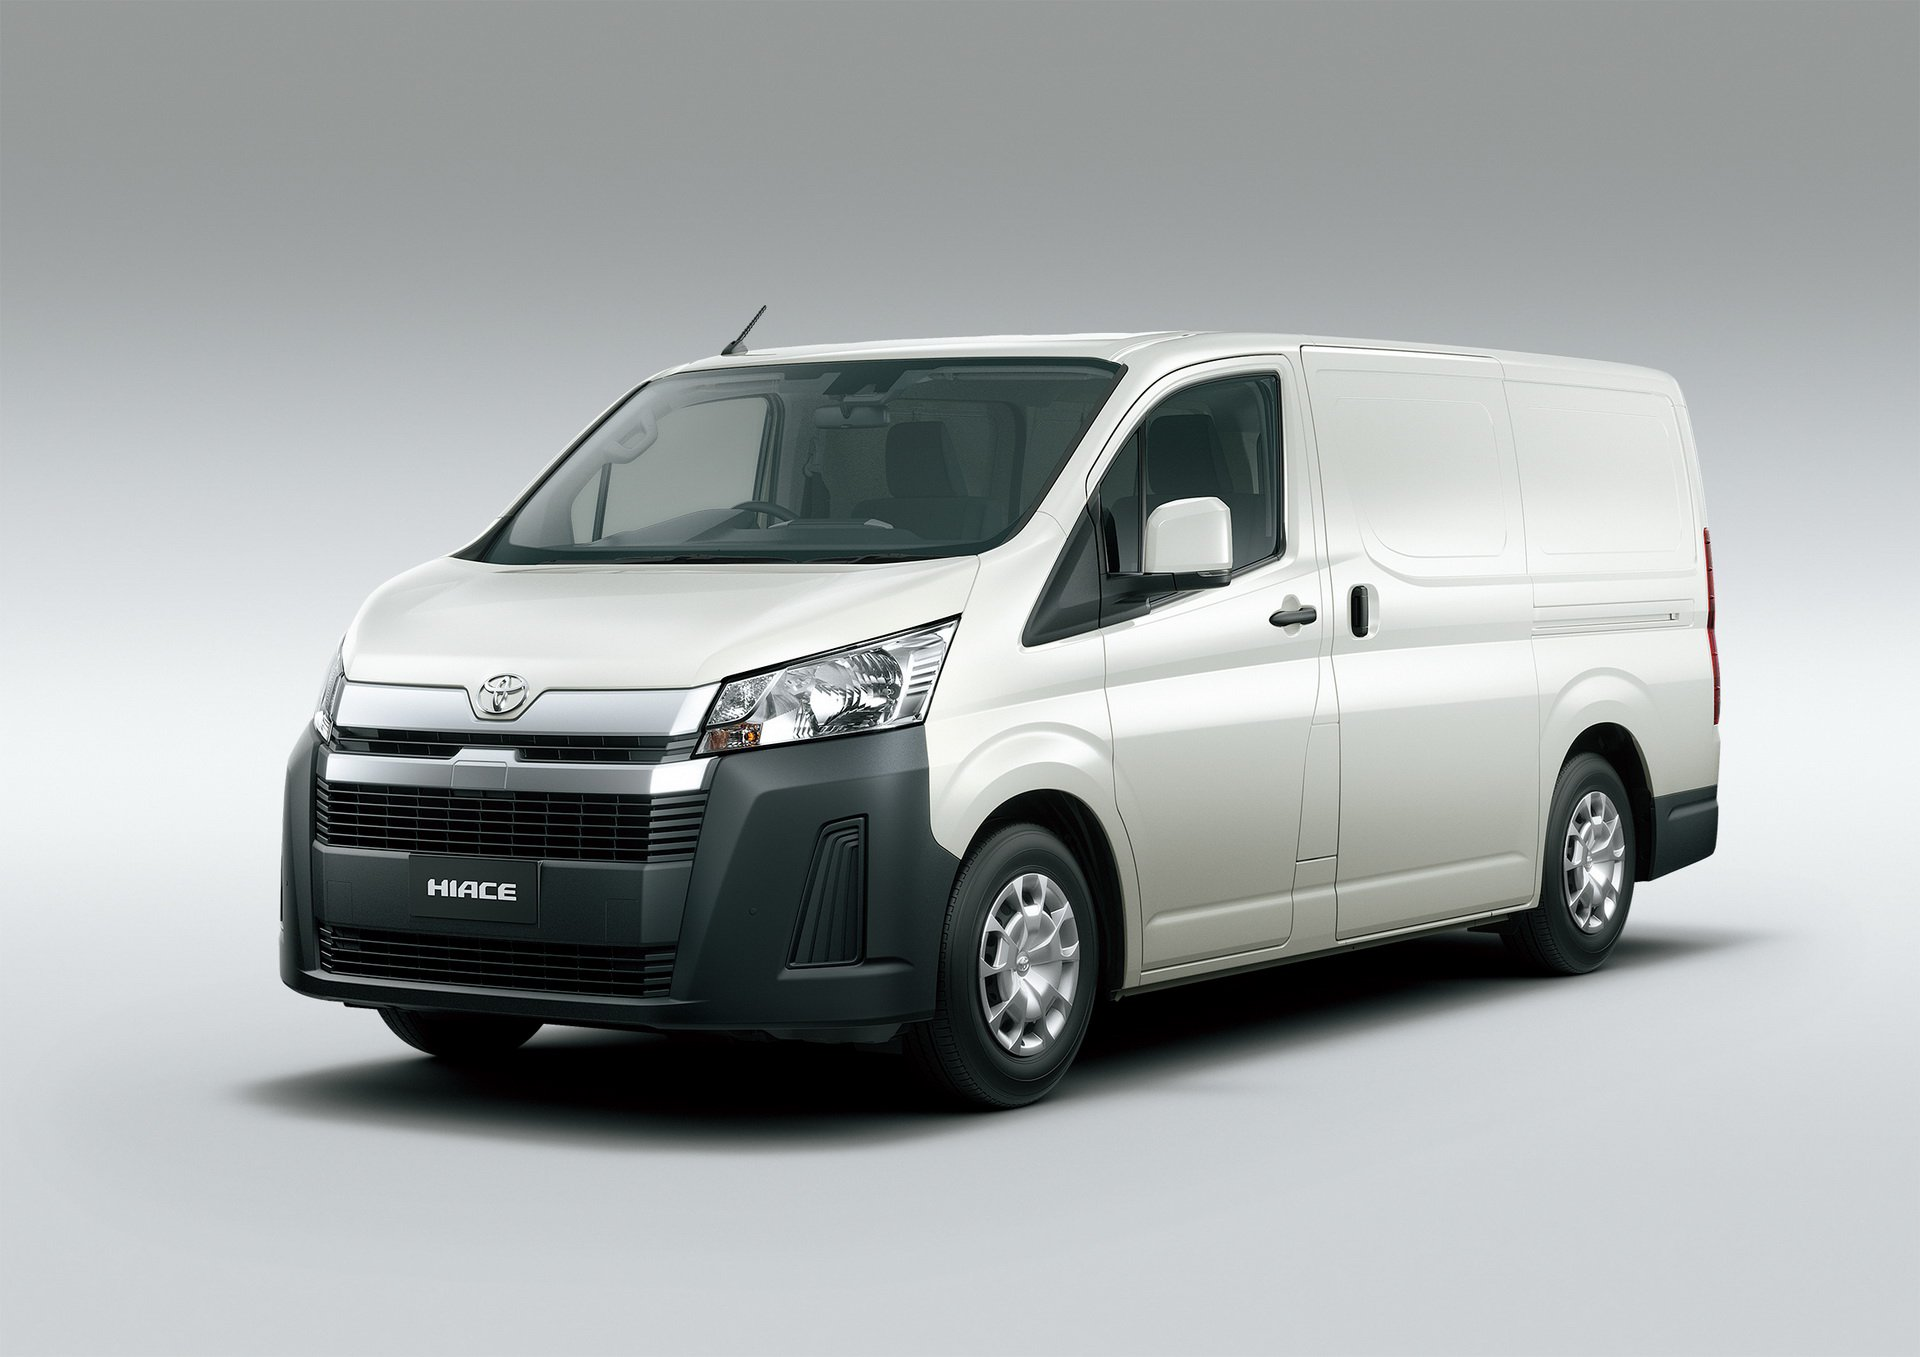 New Toyota Hiace Introduced In The Philippines Autoevolution